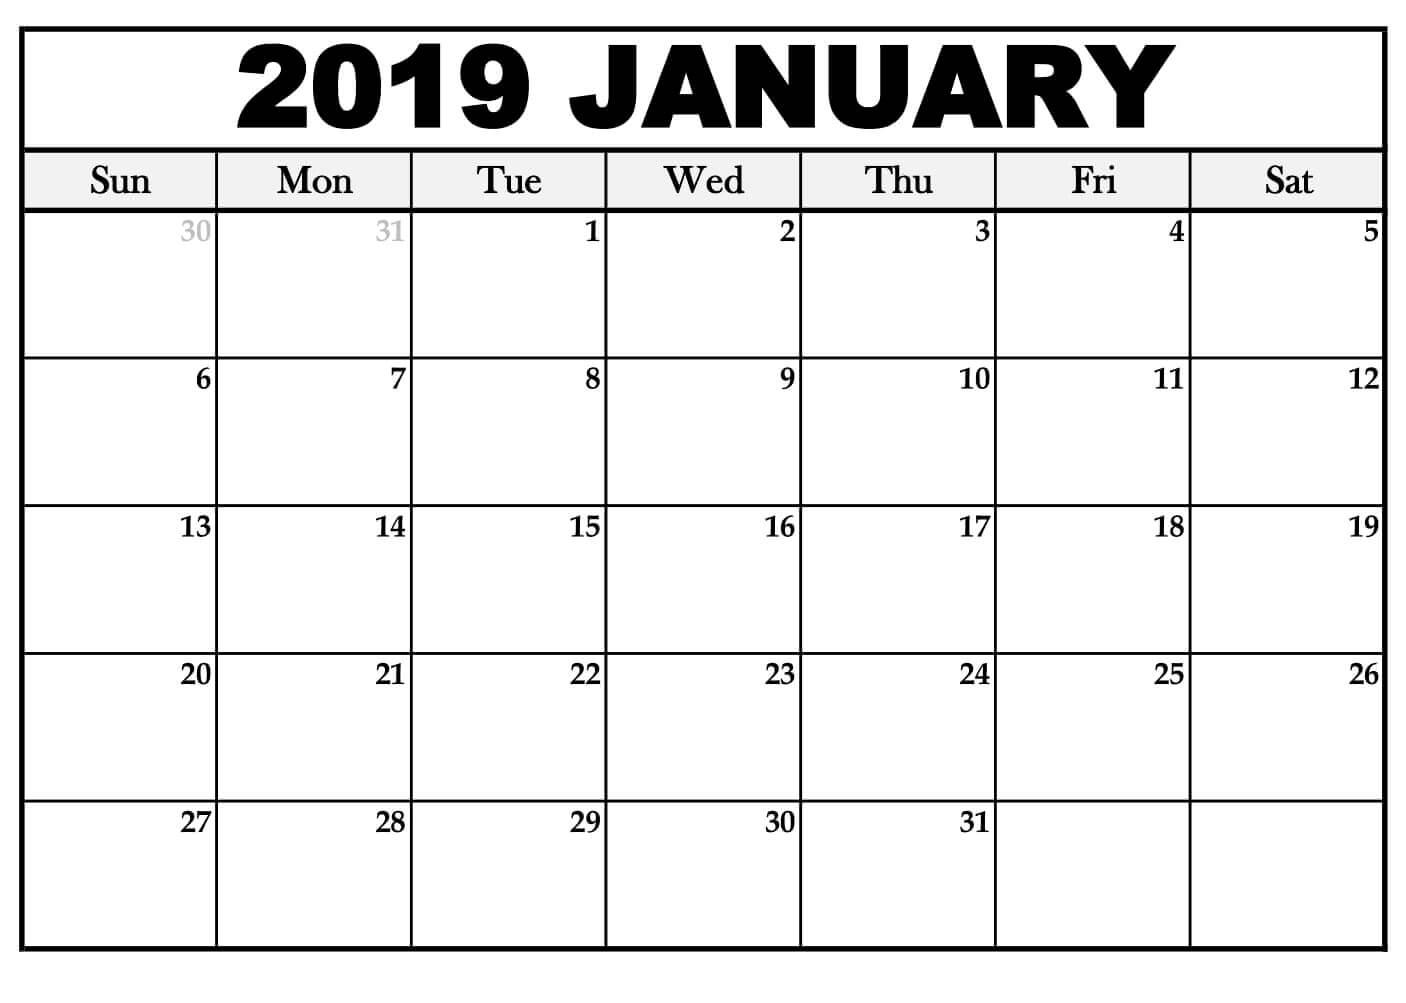 January 2019 Calendar Printable For Office photos